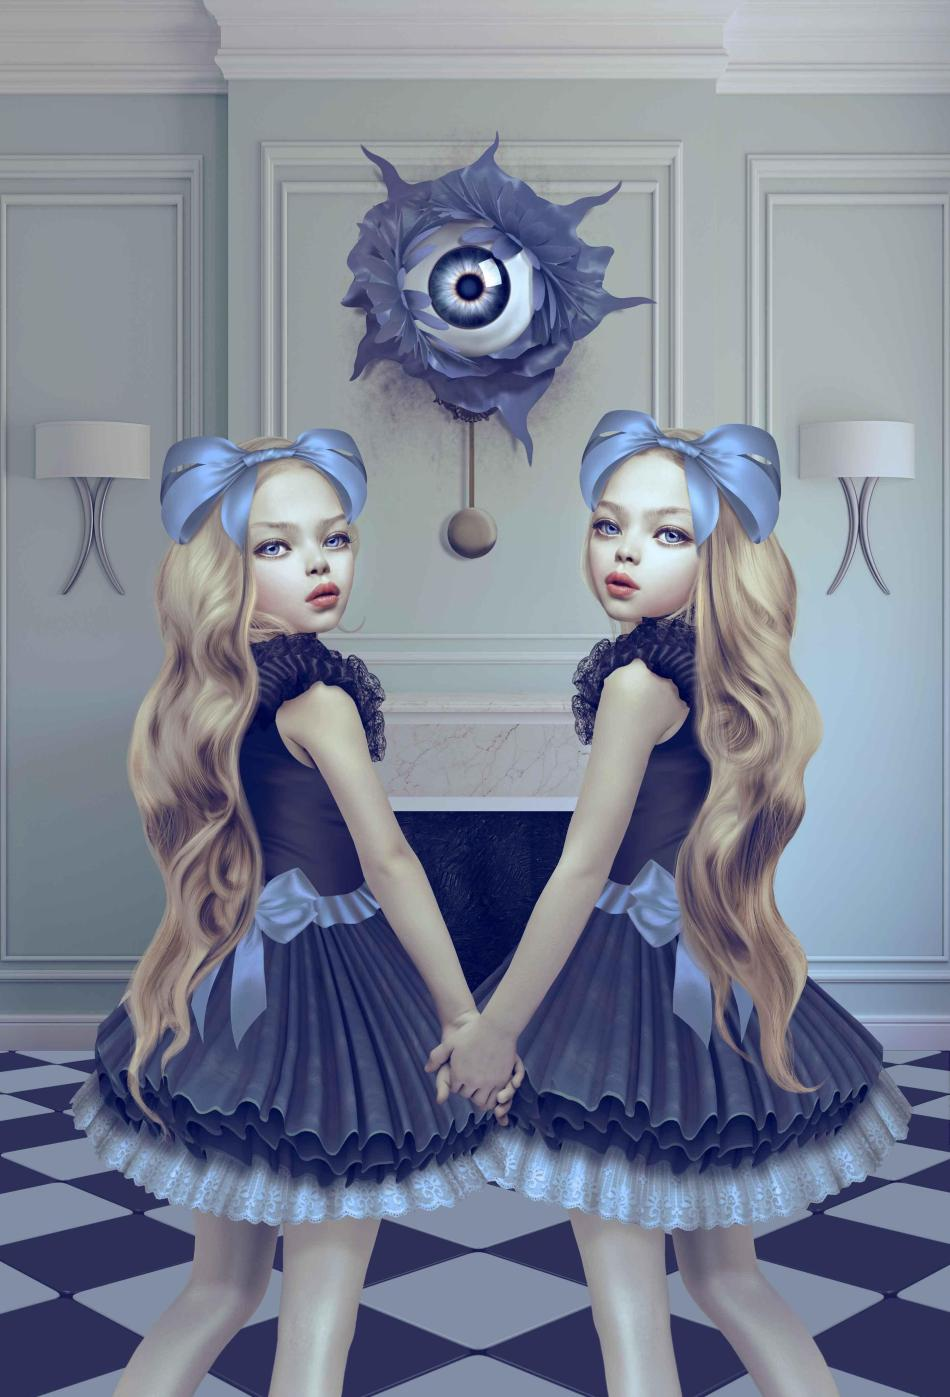 Lost in Wonderland by Natalie Shau